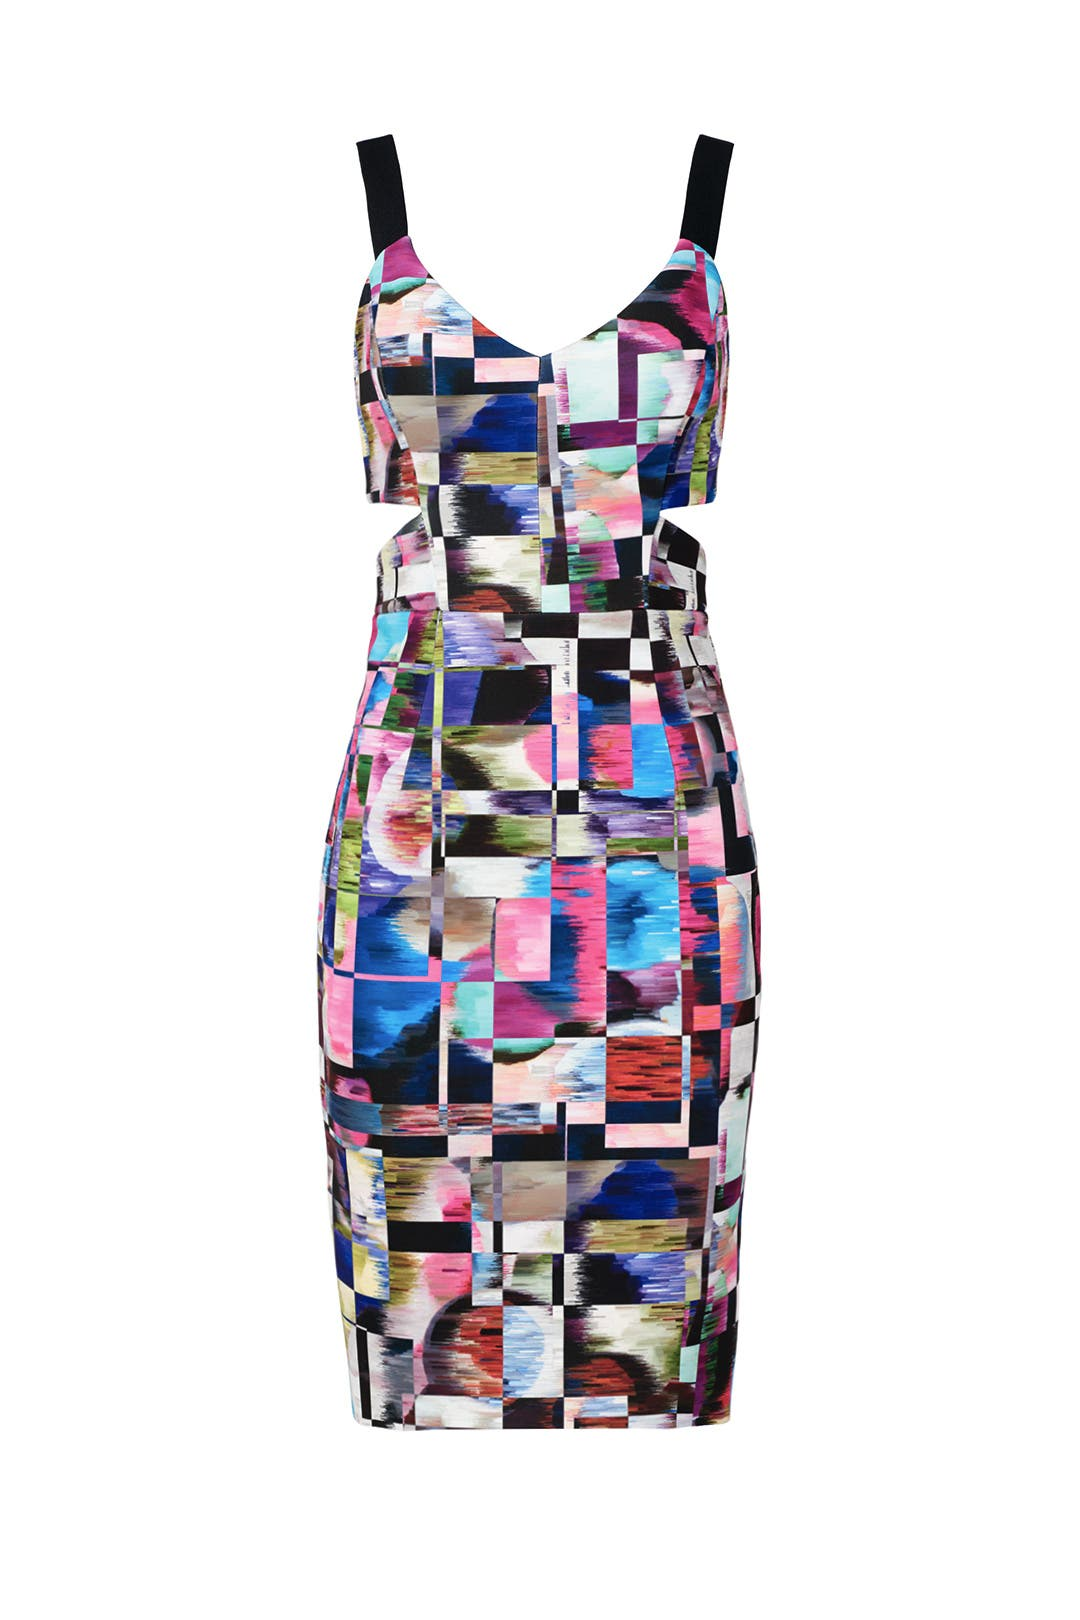 Cubist Print Sheath by Milly for $45 - $65 | Rent the Runway